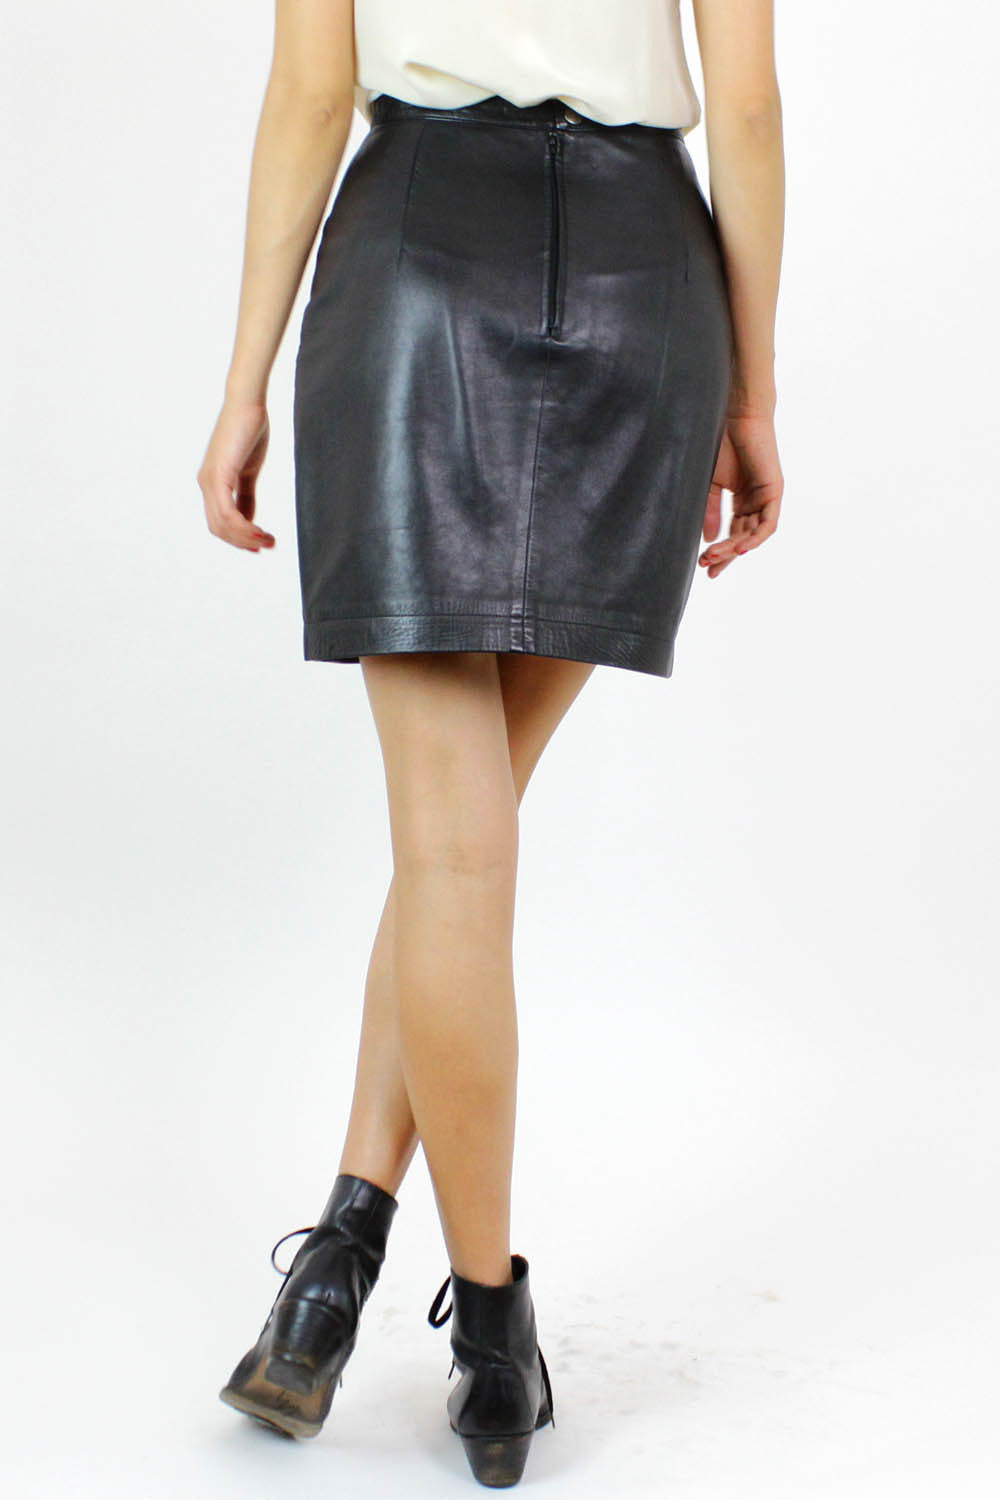 agnes b. leather skirt S